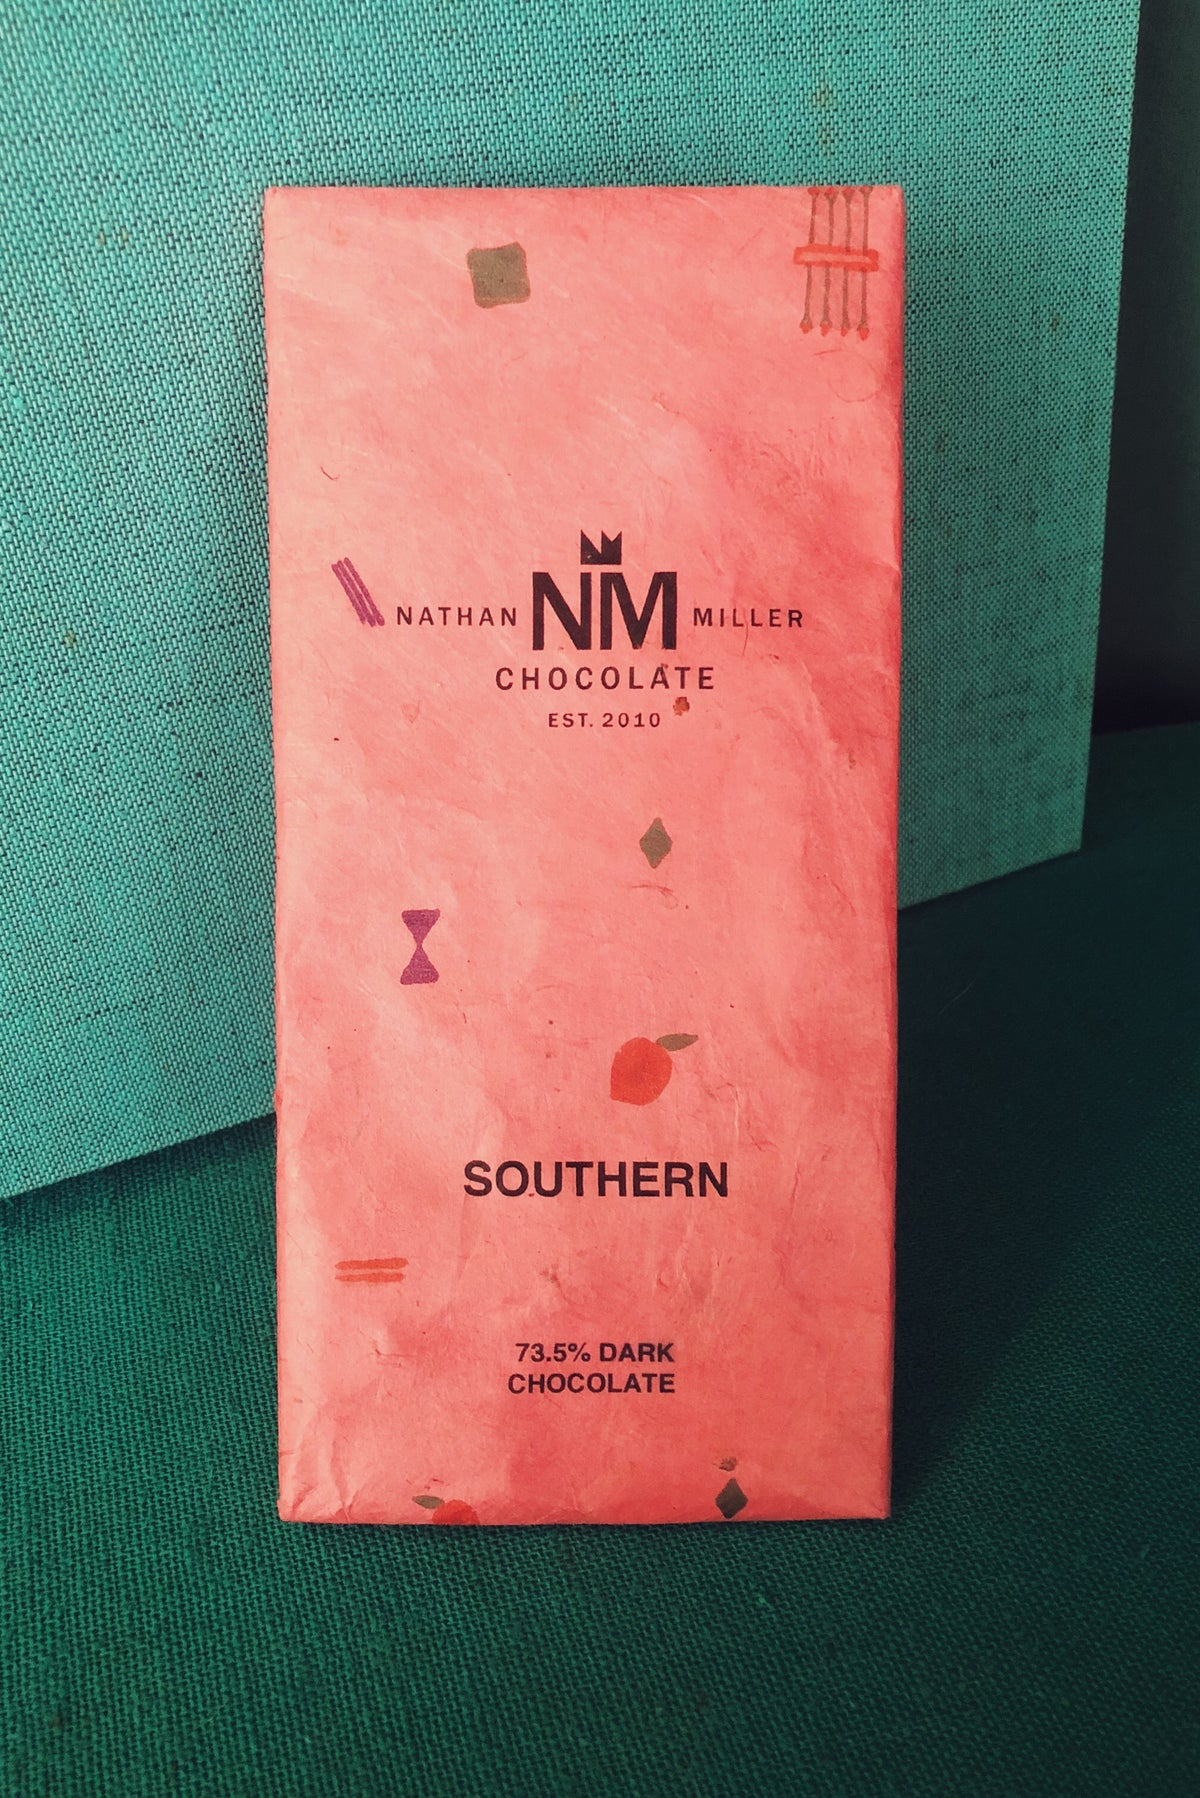 Southern bar by Nathan Miller Chocolate a Bean to Bar Chocolate Company based a few miles from the Mason Dixon line in Pennsylvania. Bourbon Peach Dark Chocolate, Honey Pecans, Blackberry.